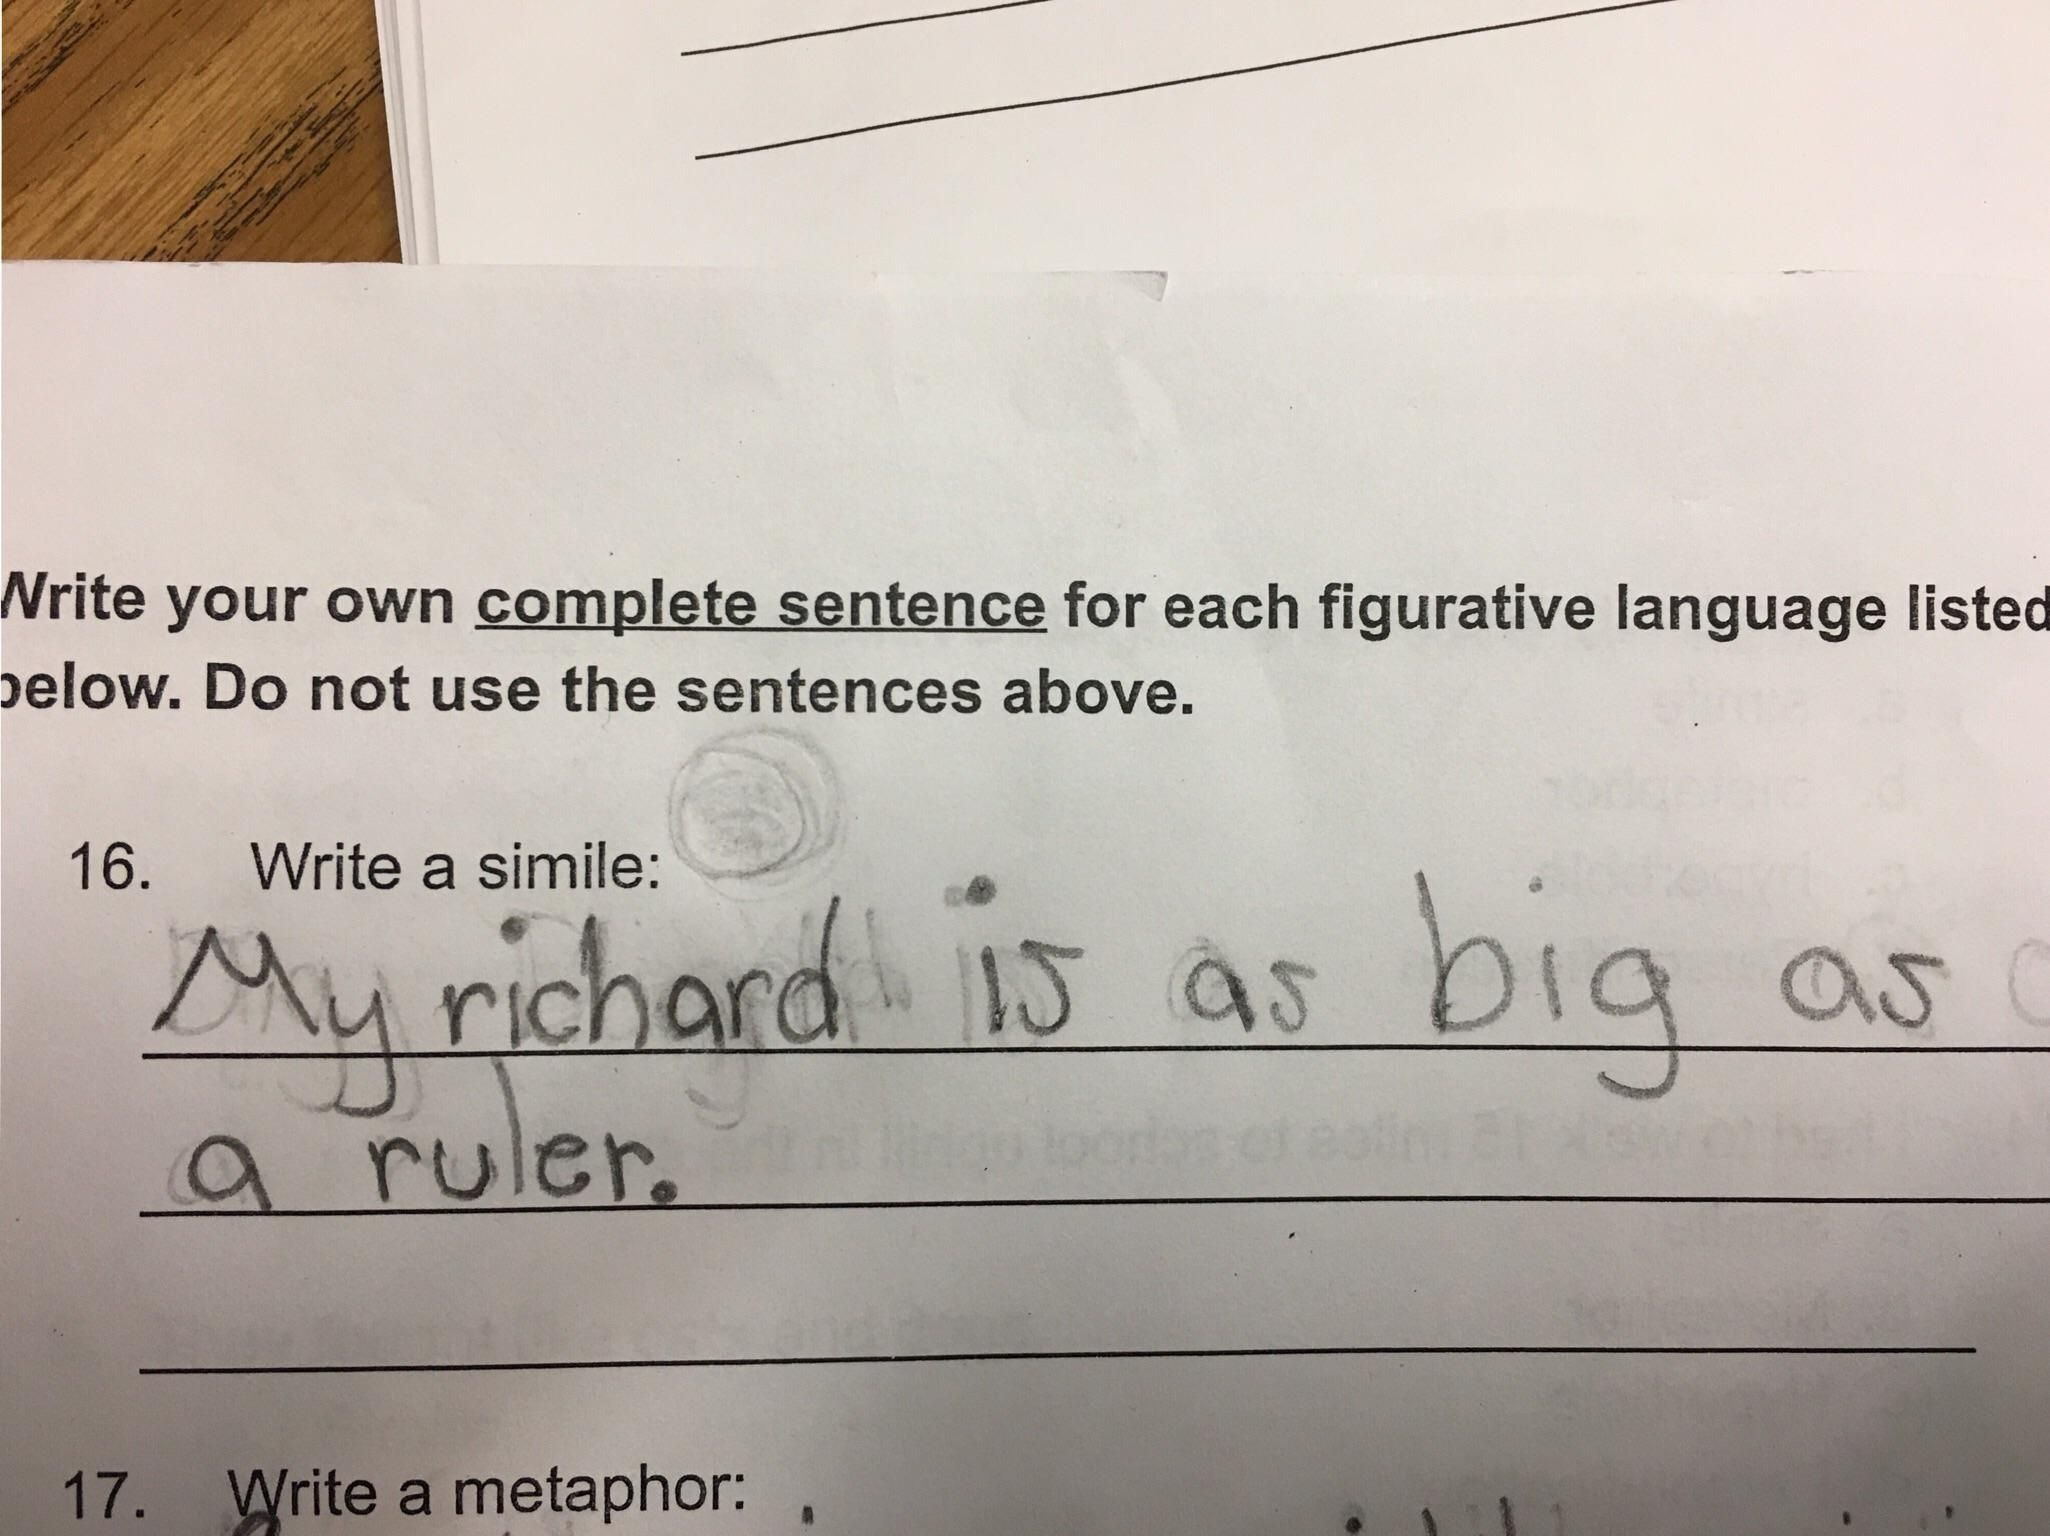 As a teacher, I'm furious. As a human, I can't stop laughing on the inside.